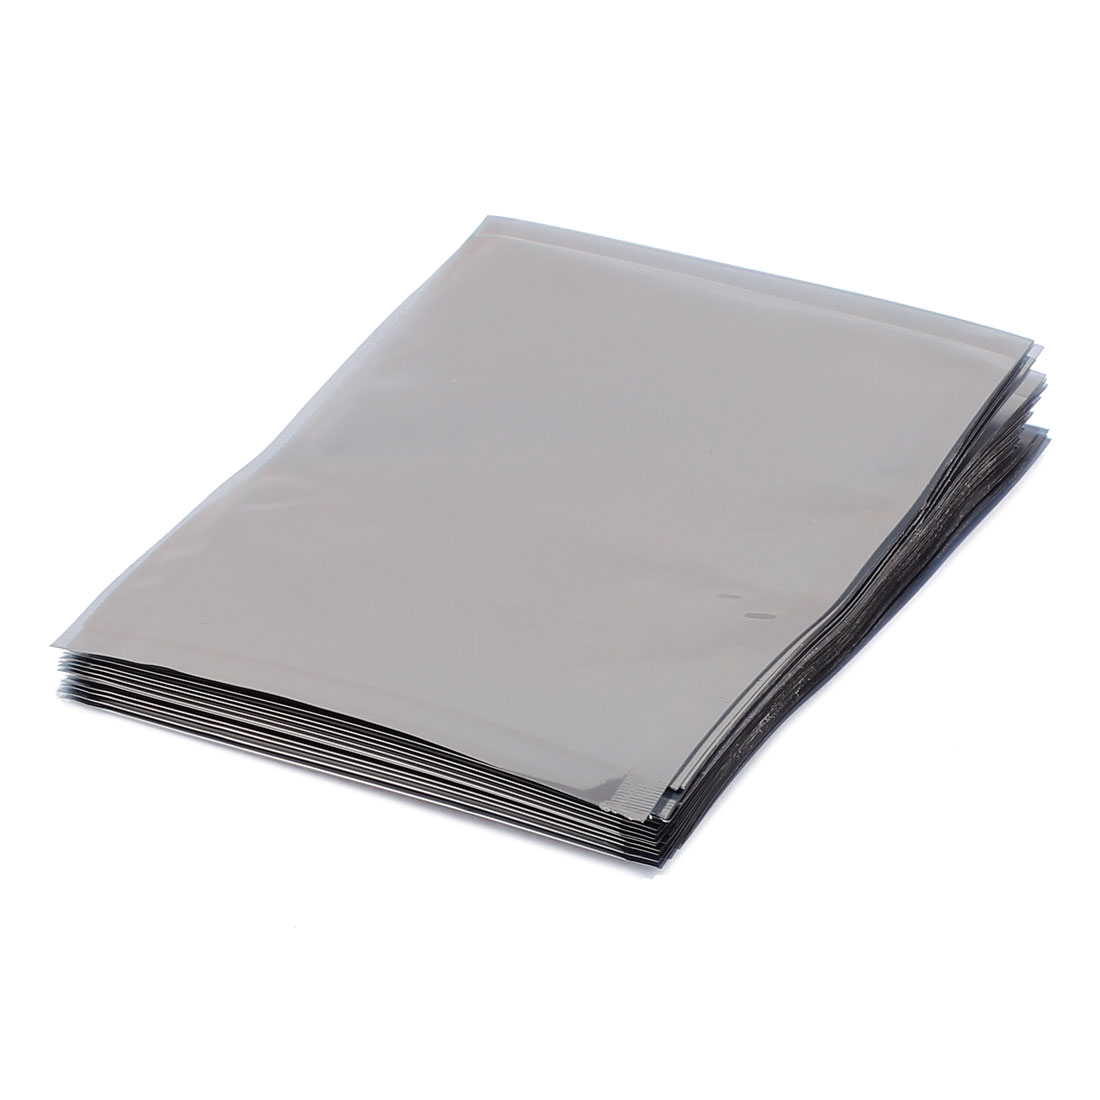 50 Pcs 100mm x 120mm Silver Tone Flat Open Top Anti Static Bag For Electronics